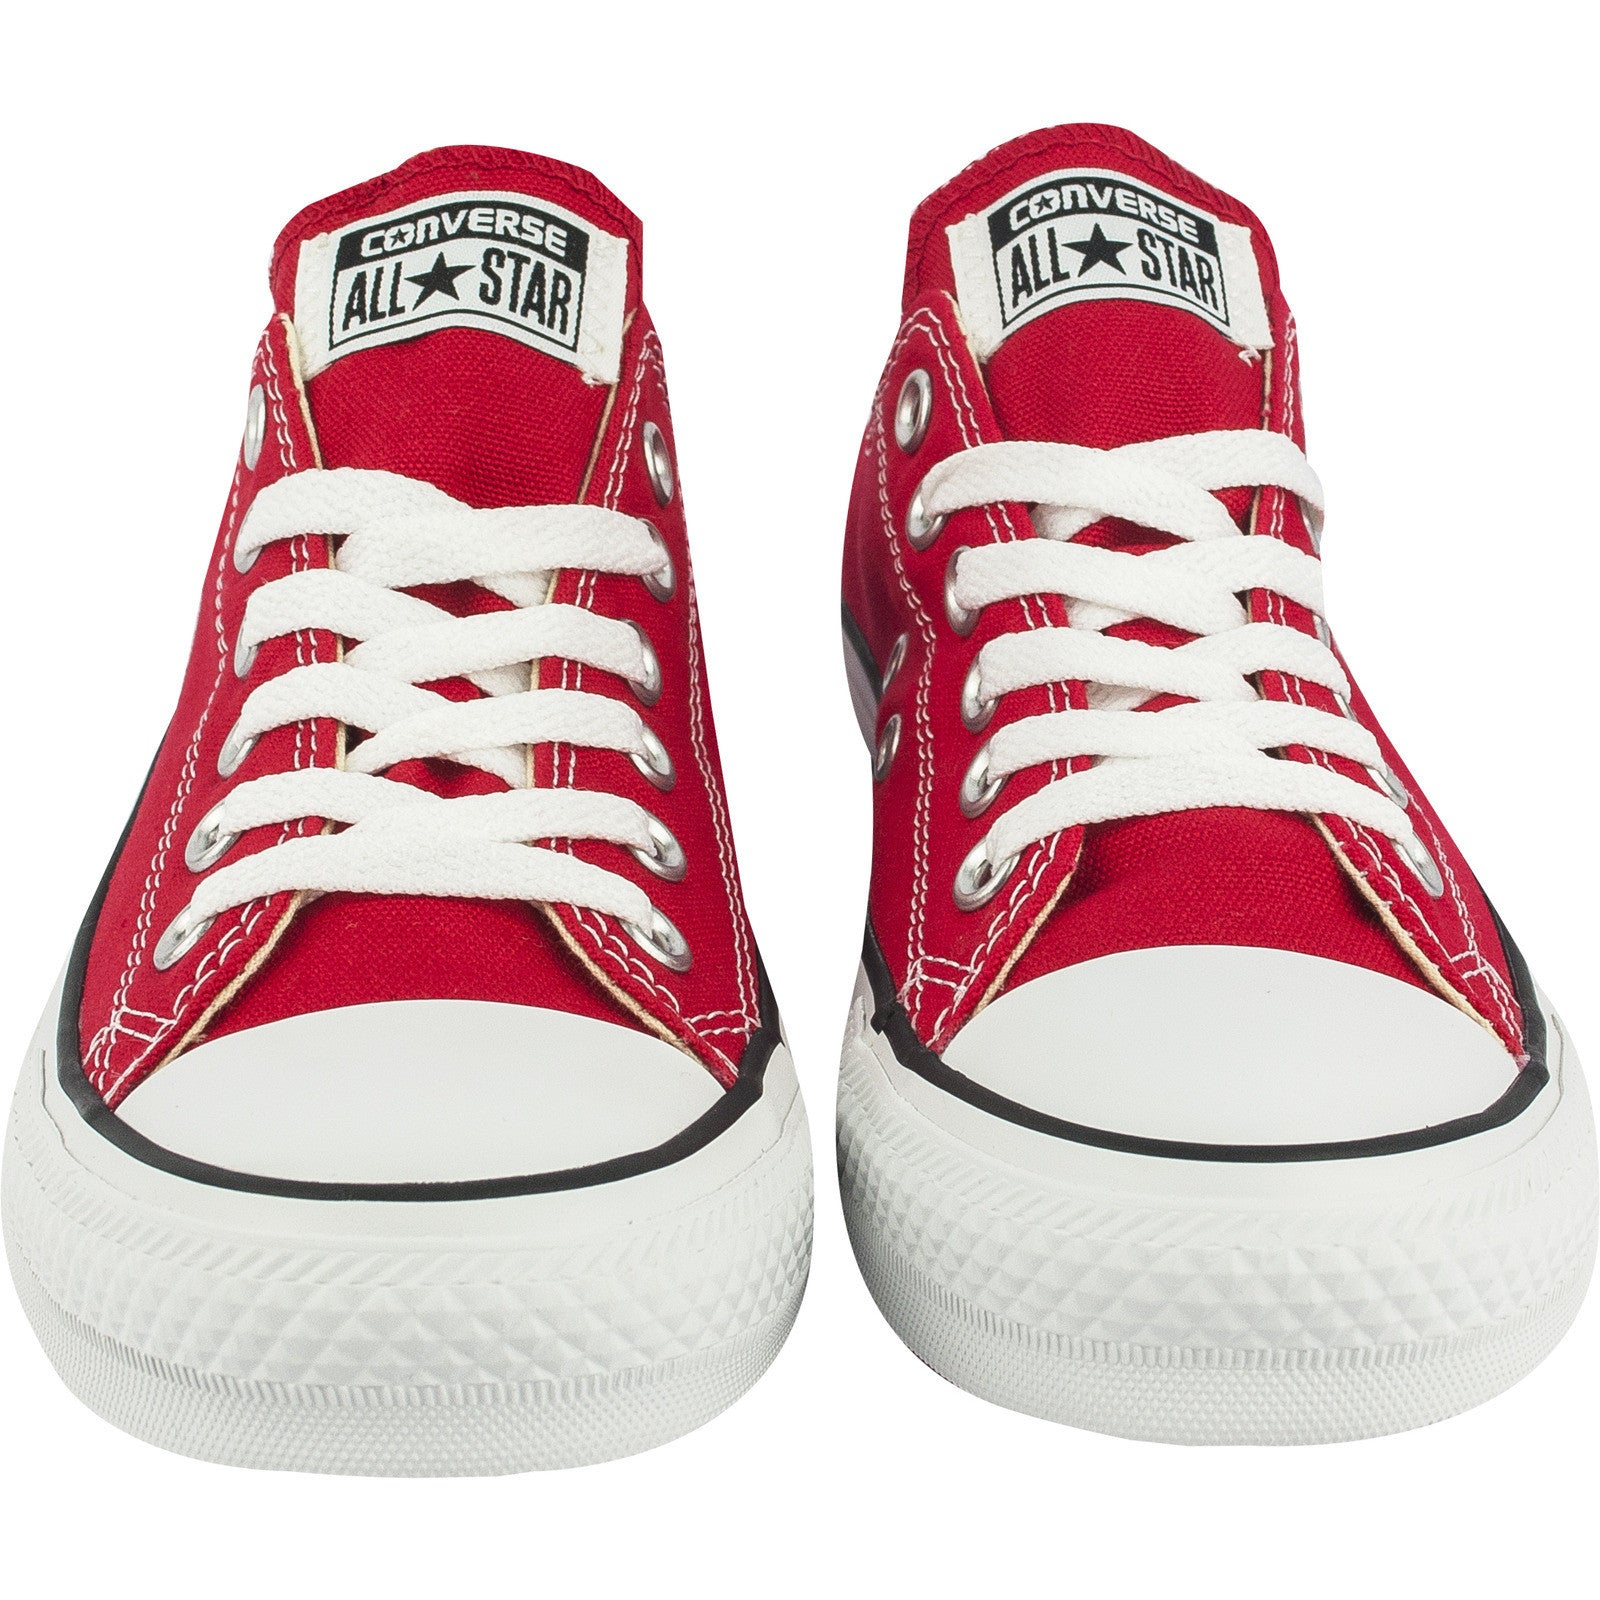 Converse Classic Chuck Taylor Low